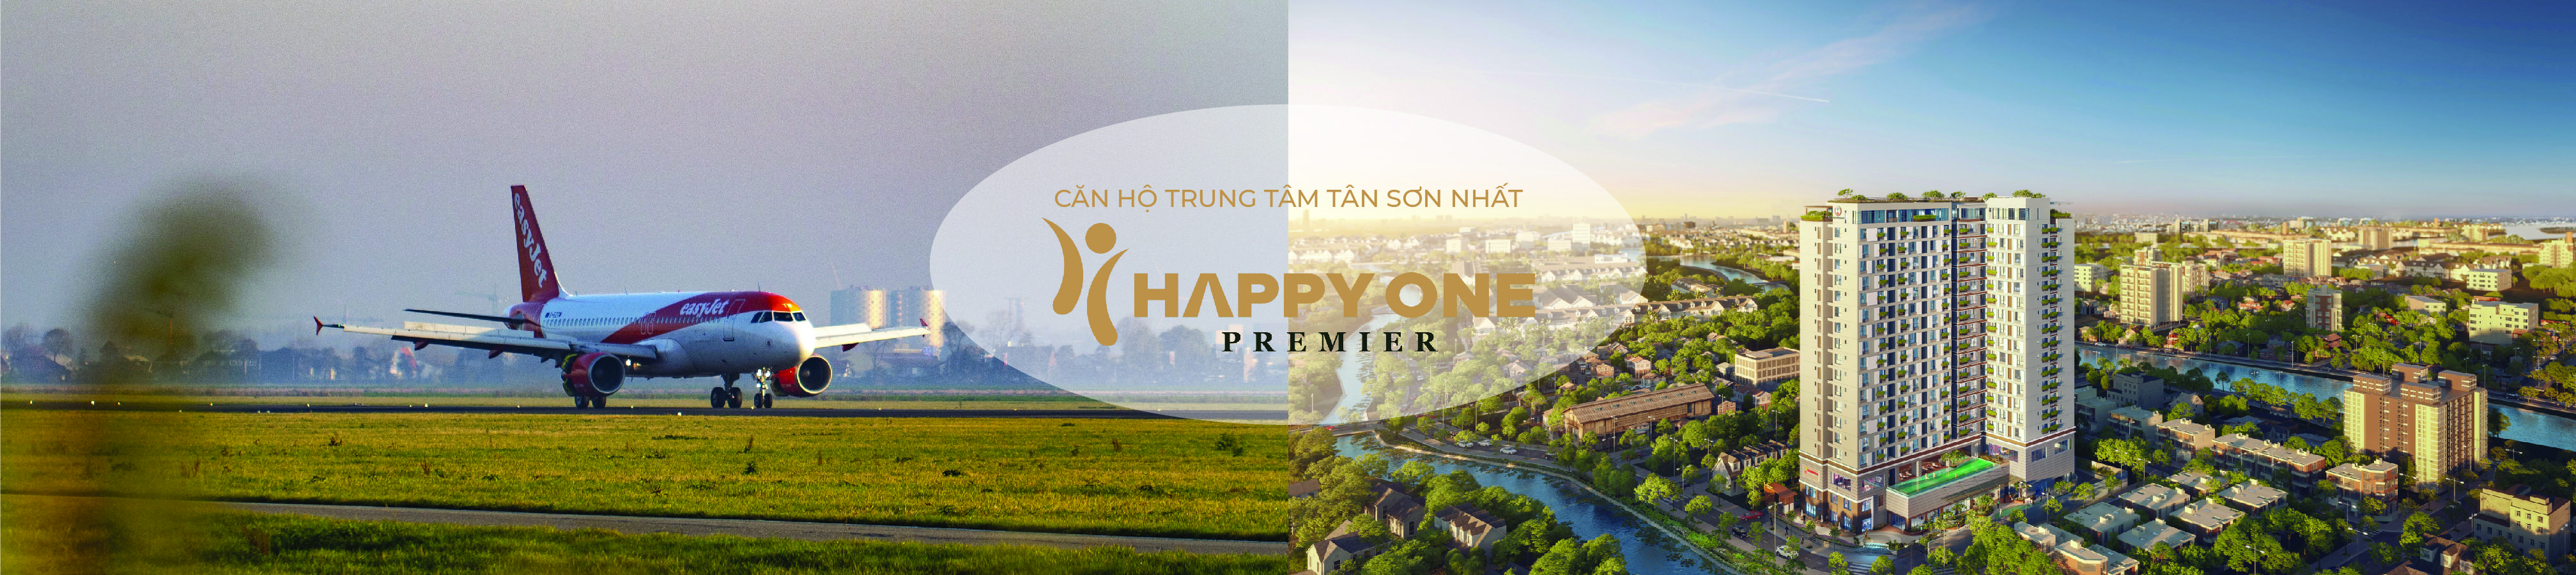 tong-quan-happy-one-premier